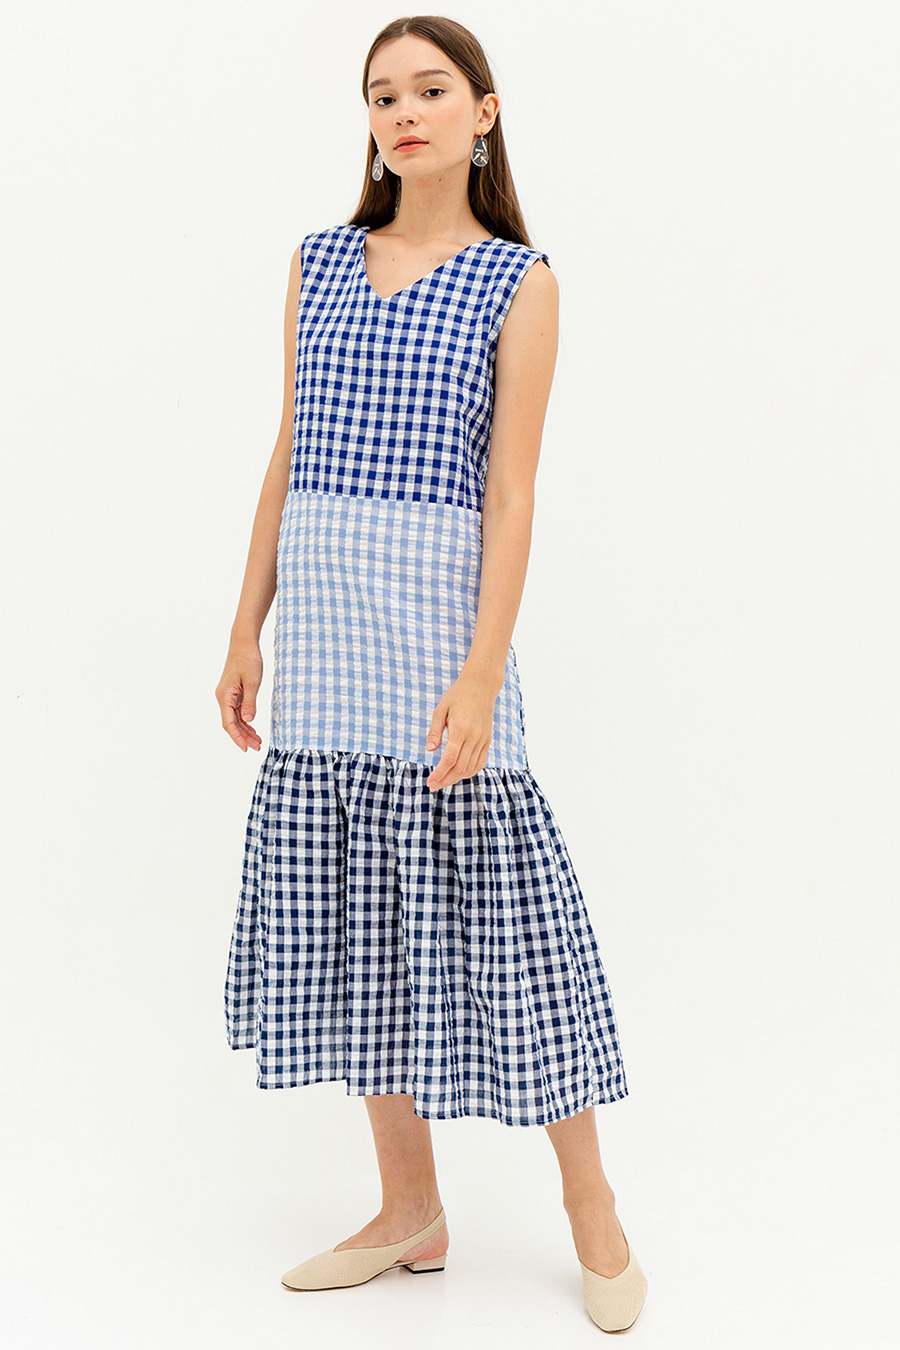 *SALE* JIMENA DRESS - GINGHAM